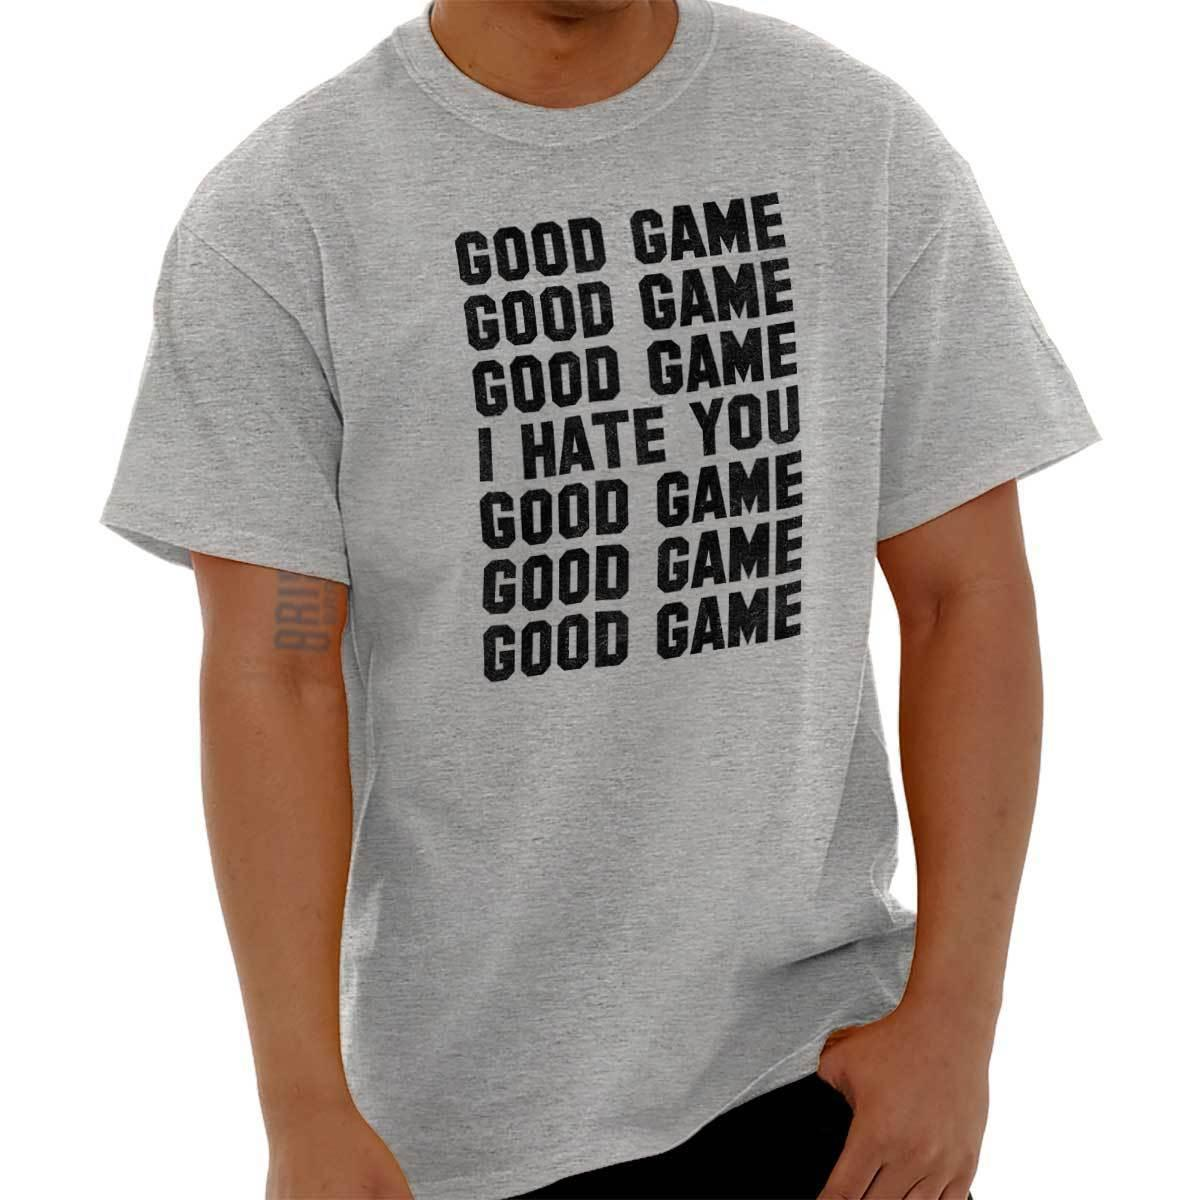 3246dcd6a Good Game I Hate You Funny Shirt Cool Gift Cute Sarcastic Gym T Shirt Funny  Unisex Casual Tee Gift Patriotic T Shirts Funny Tshirt From Shirt_monkey,  ...